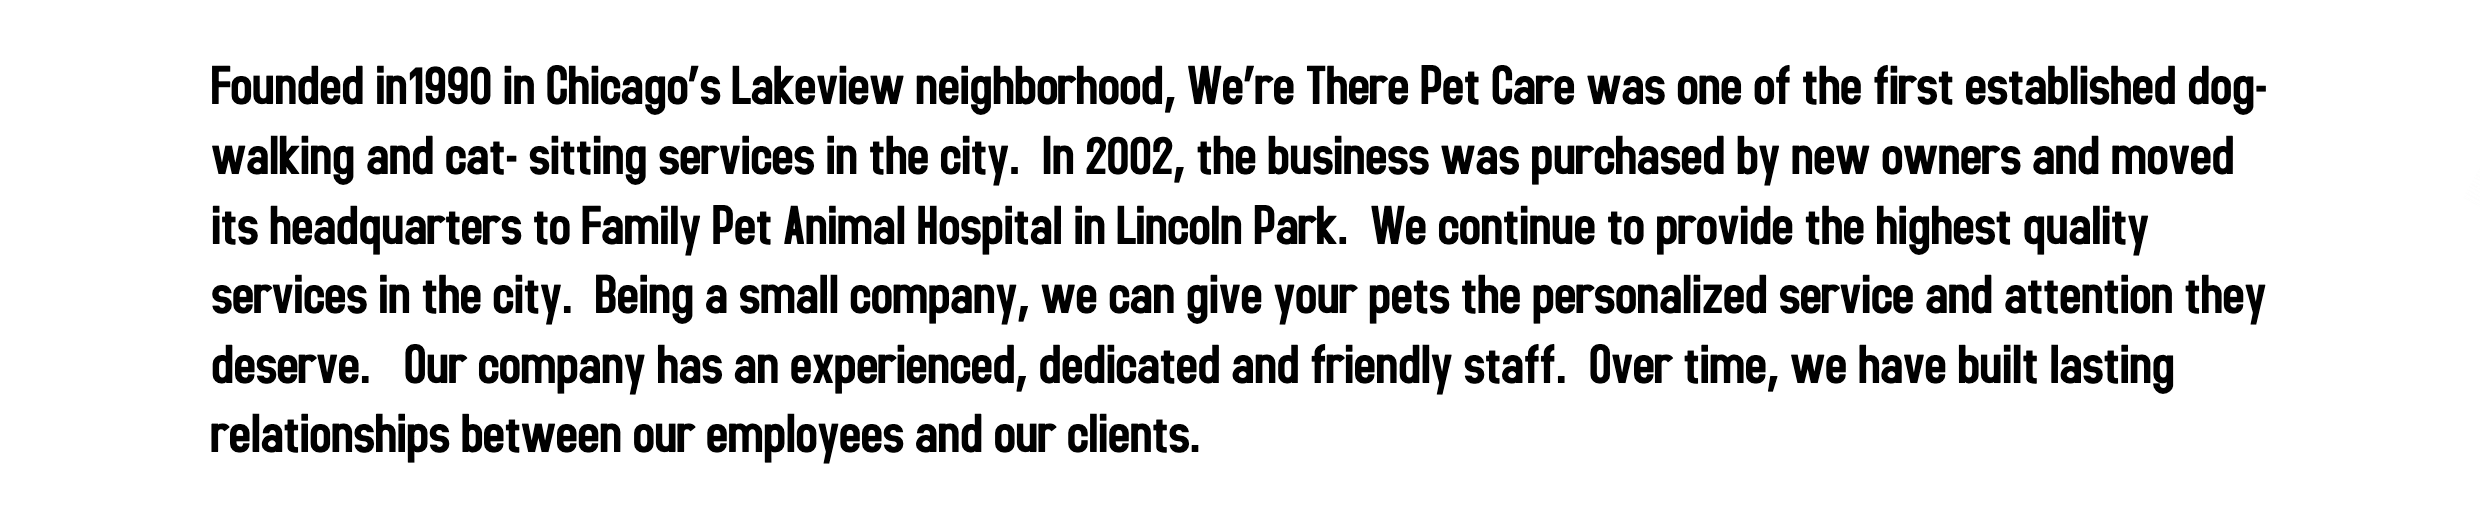 we're there pet care